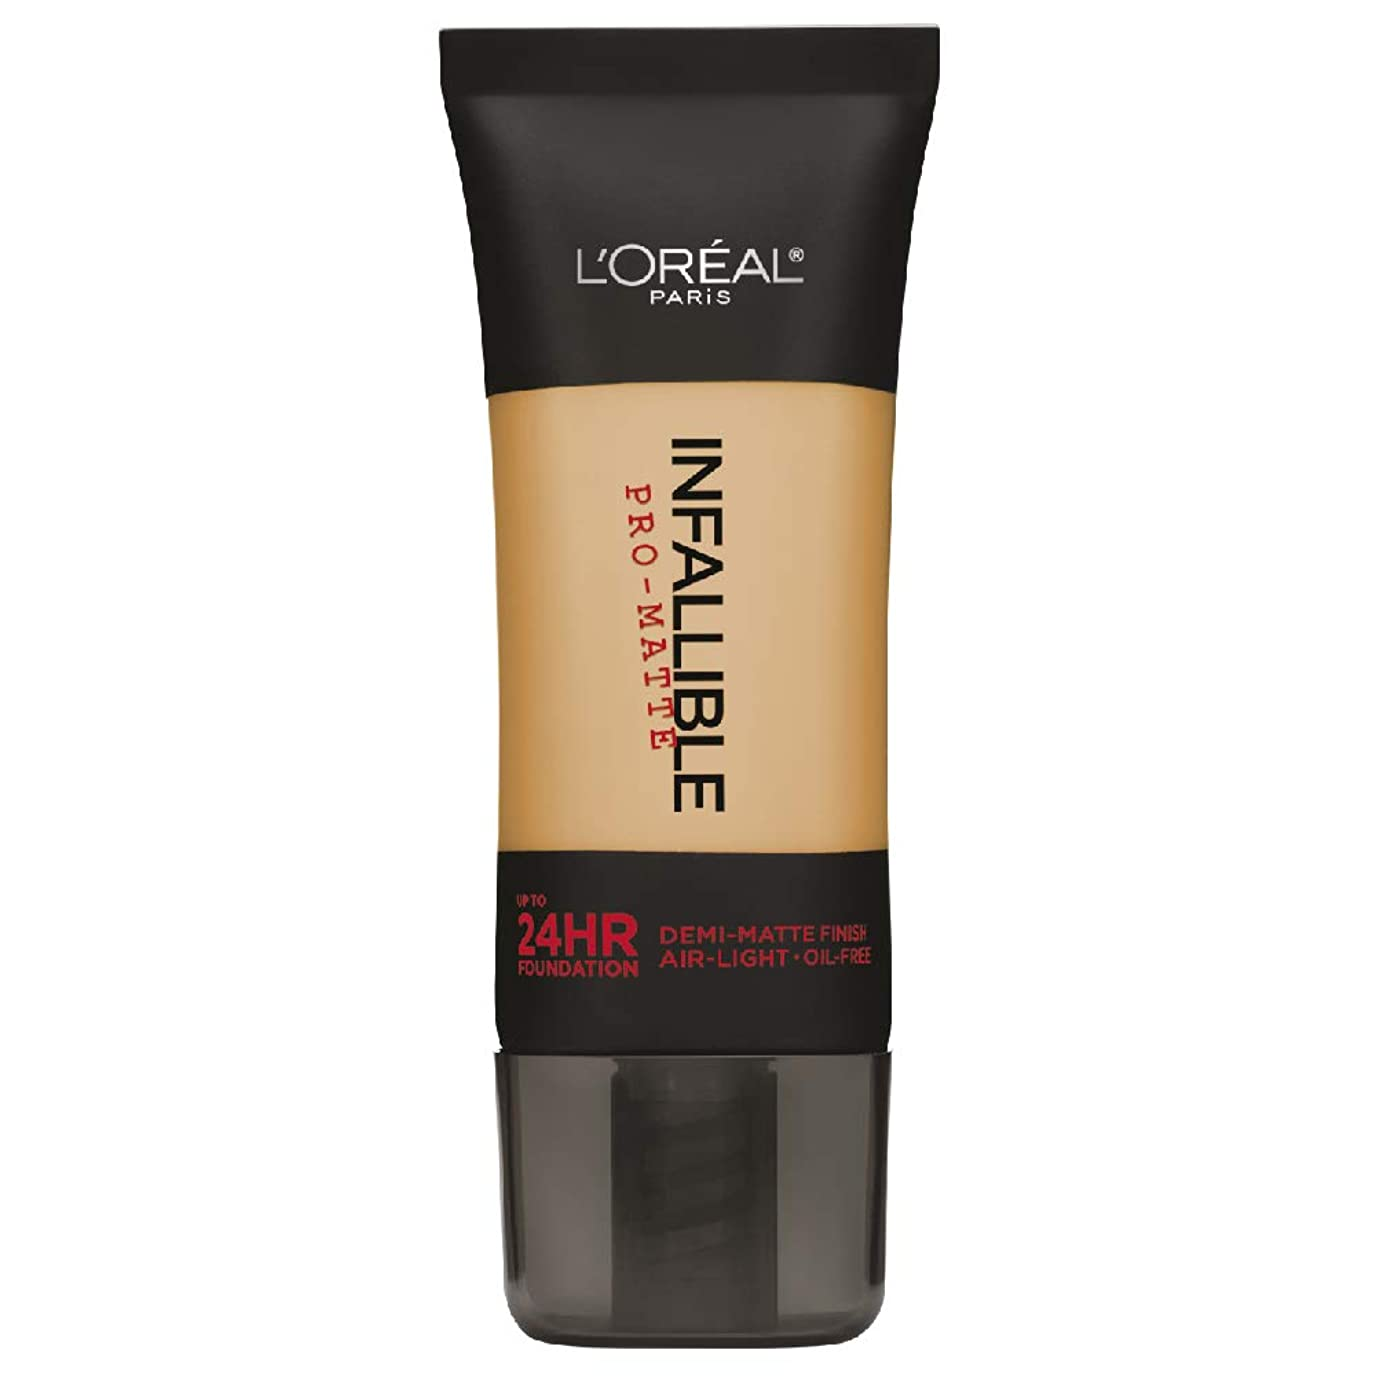 ネット直接演じるL'Oreal Paris Infallible Pro-Matte Foundation Makeup, 106 Sun Beige, 1 fl. oz[並行輸入品]